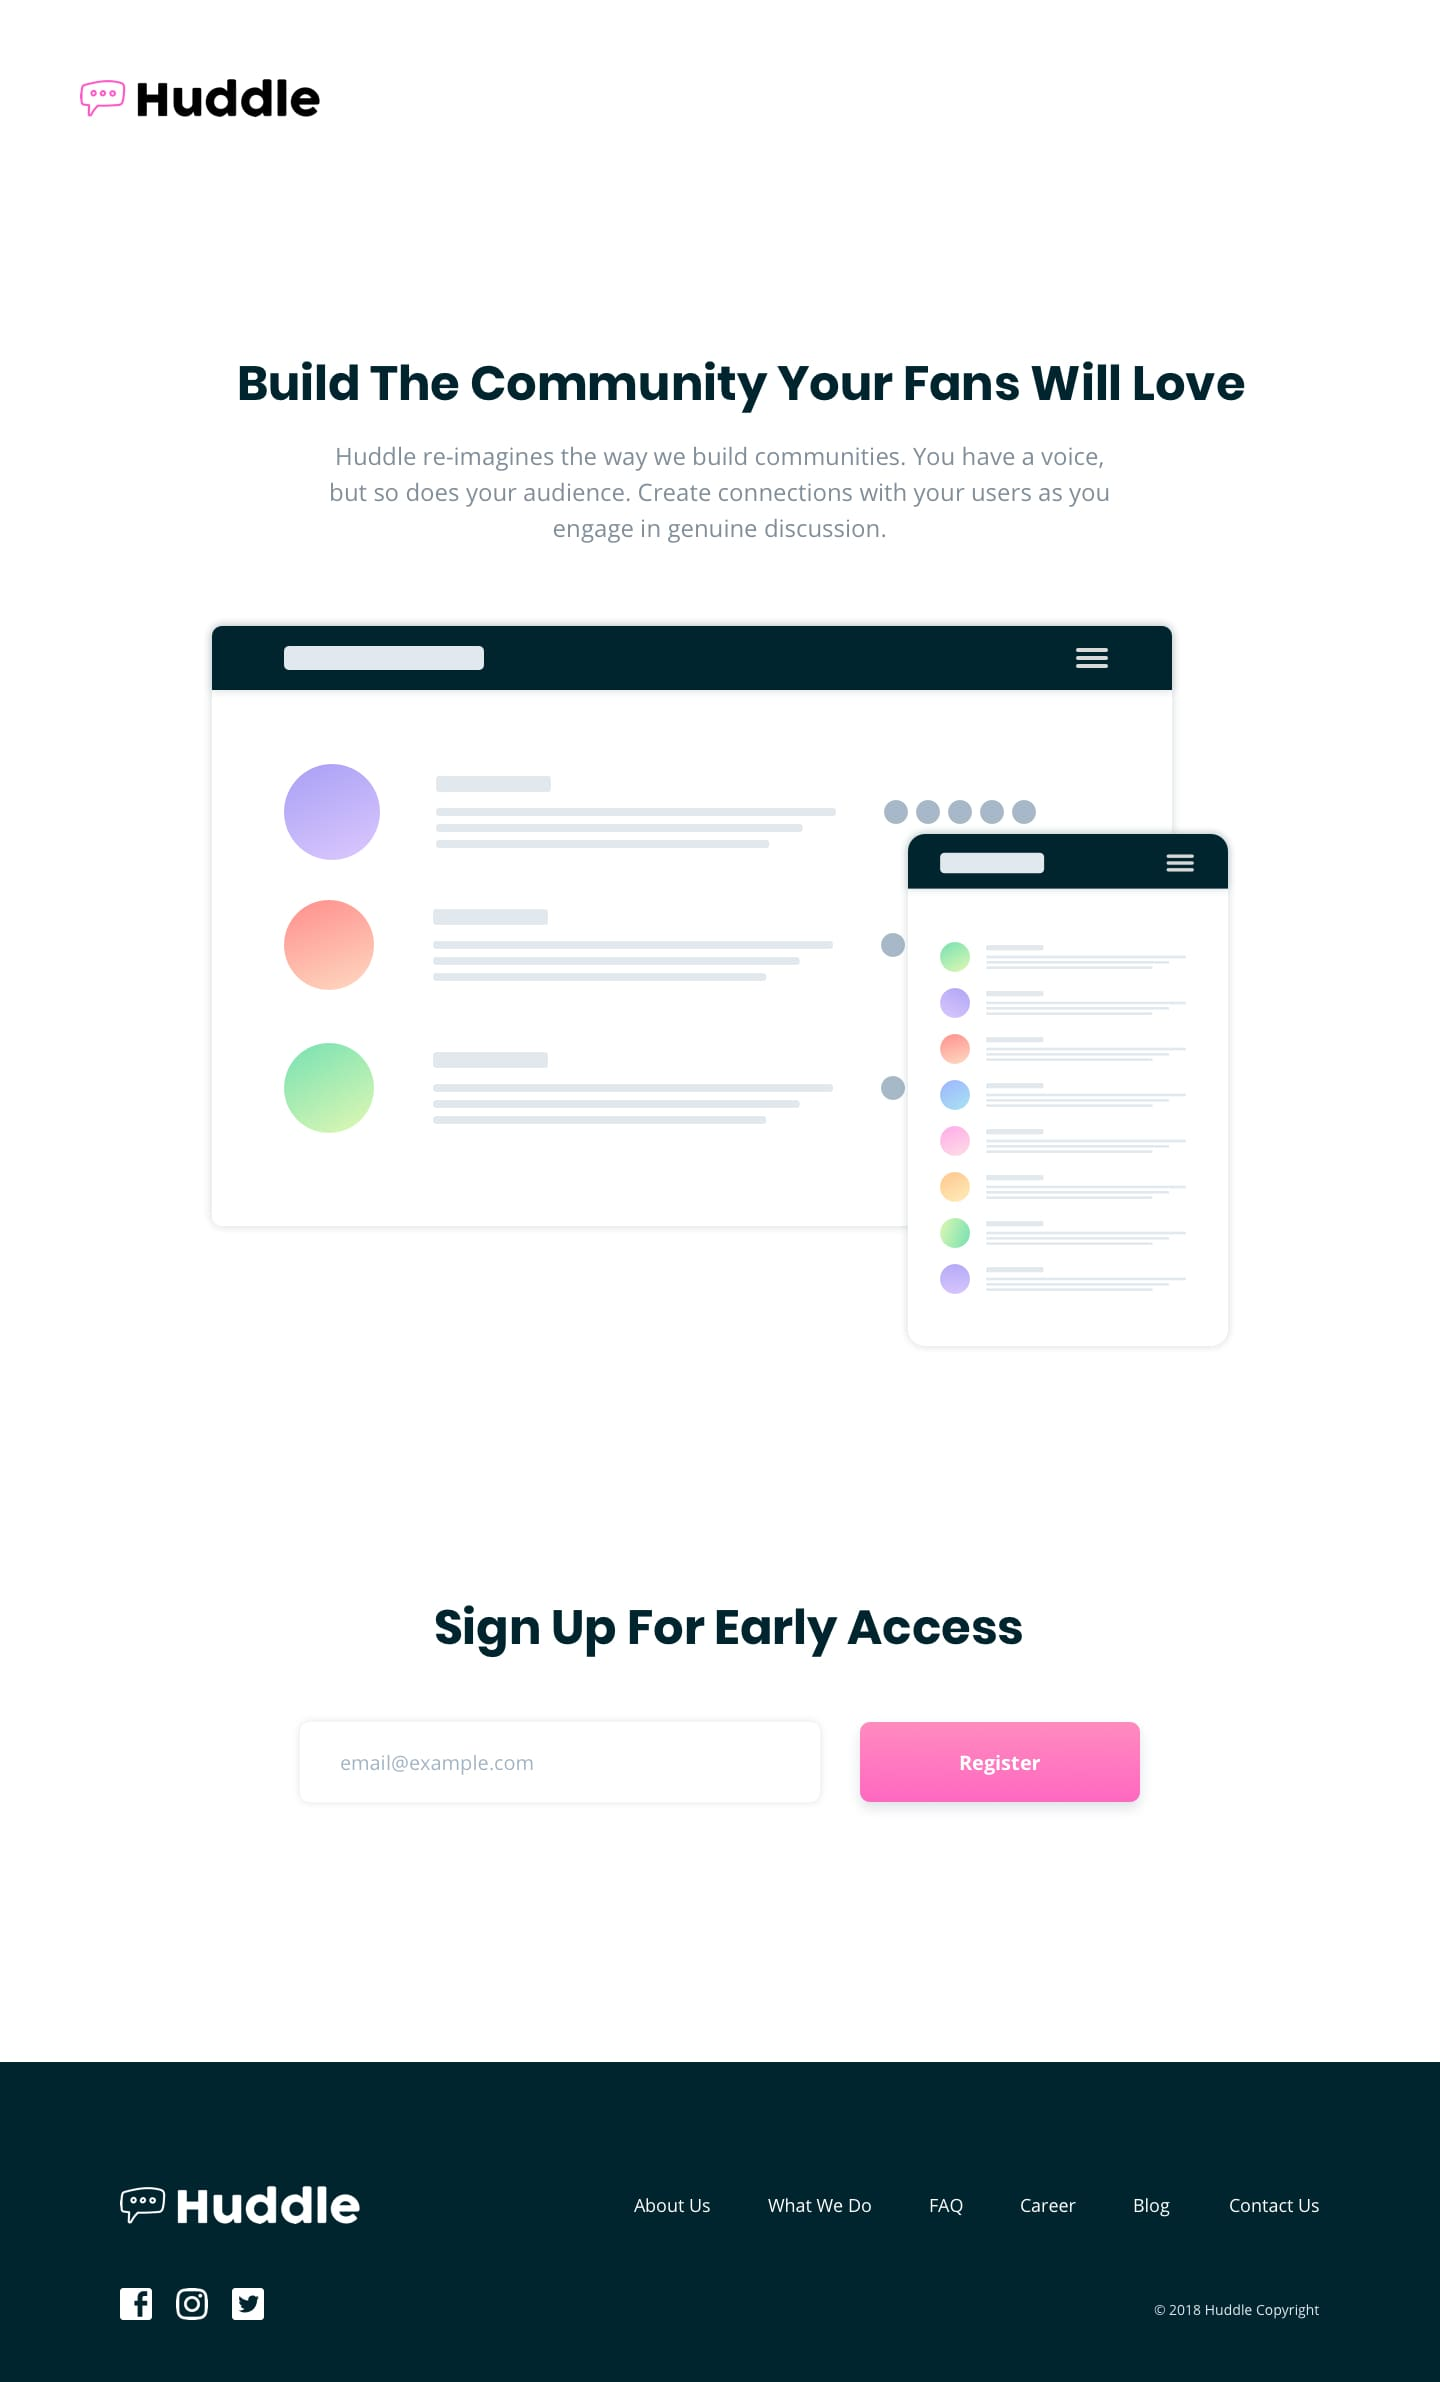 Design preview for Huddle landing page with single column layout coding challenge